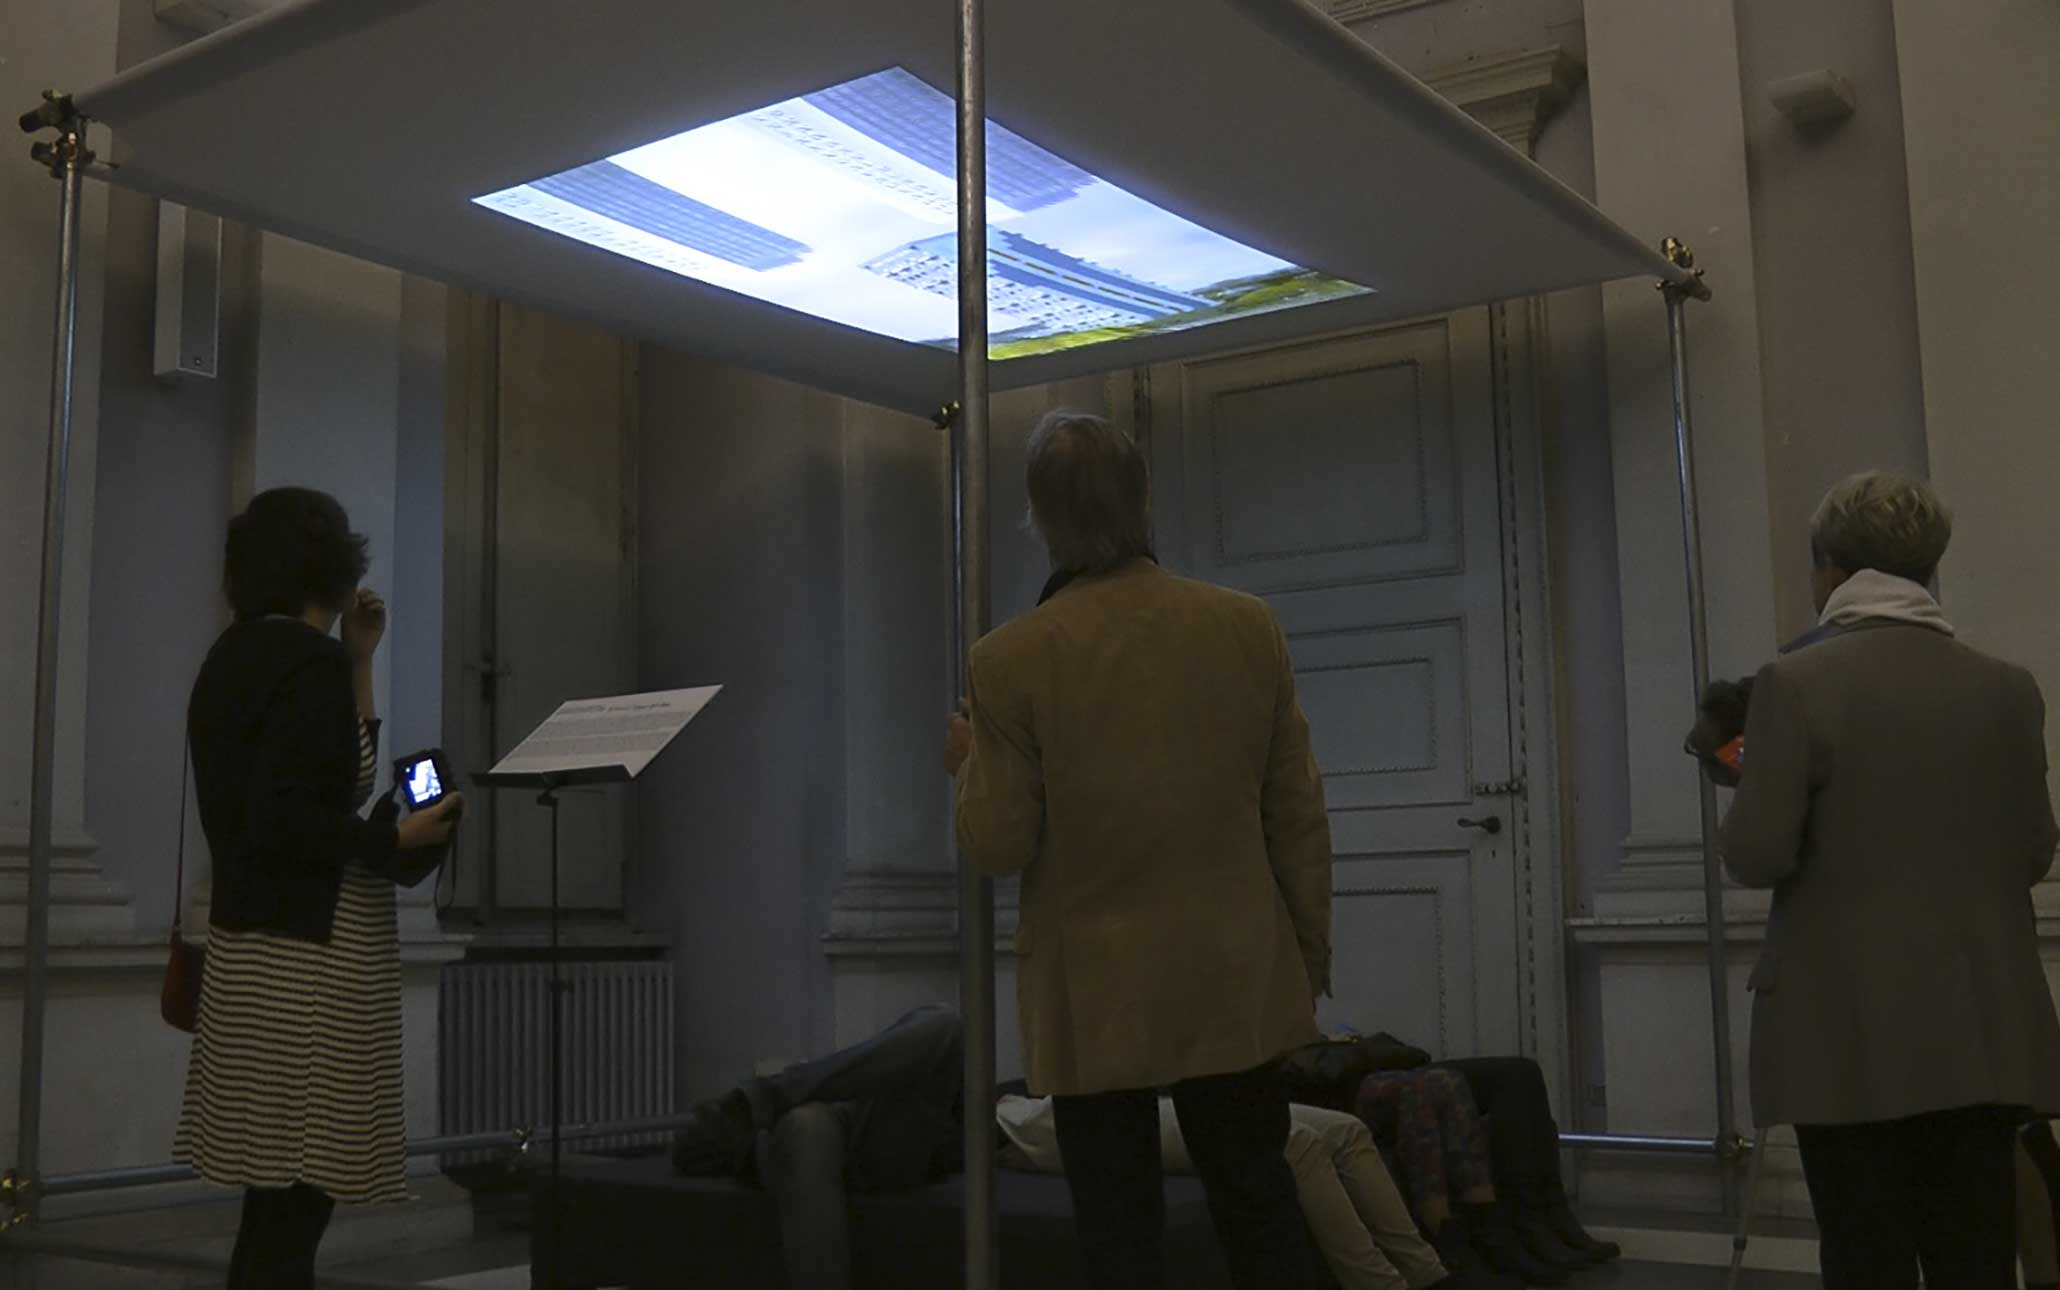 SHARE PRIZE - Real Time / Real Space. Piemonte Share Festival, Accademia di Belle Arti, Turin, Italy, 30 Oct. - 9 Nov. 2013